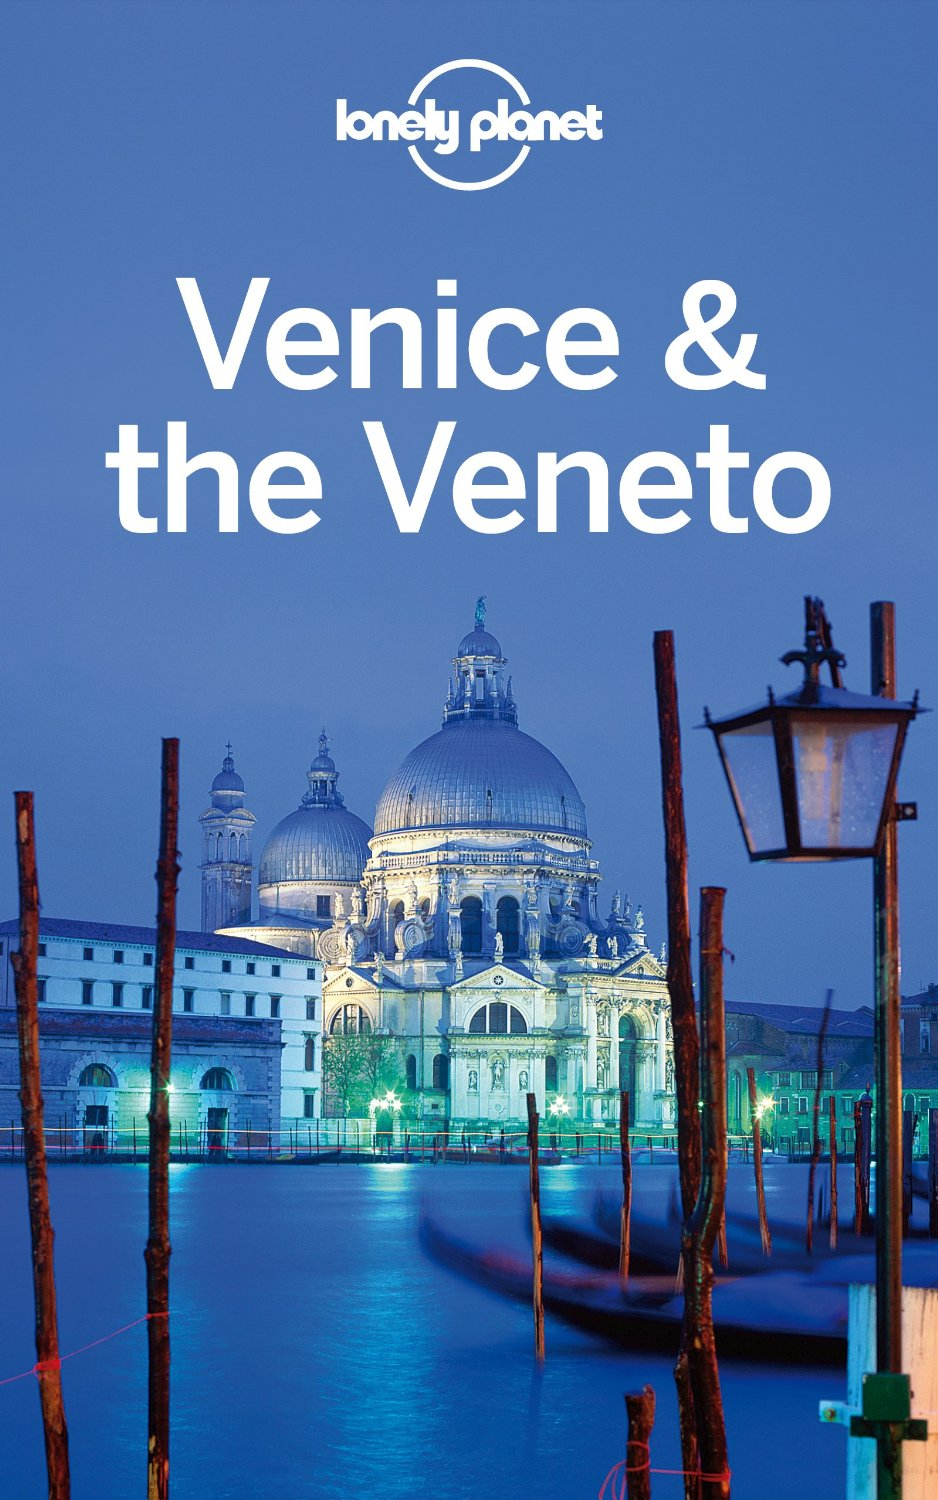 Lonely Planet Venice & the Veneto (Travel Guide) free download